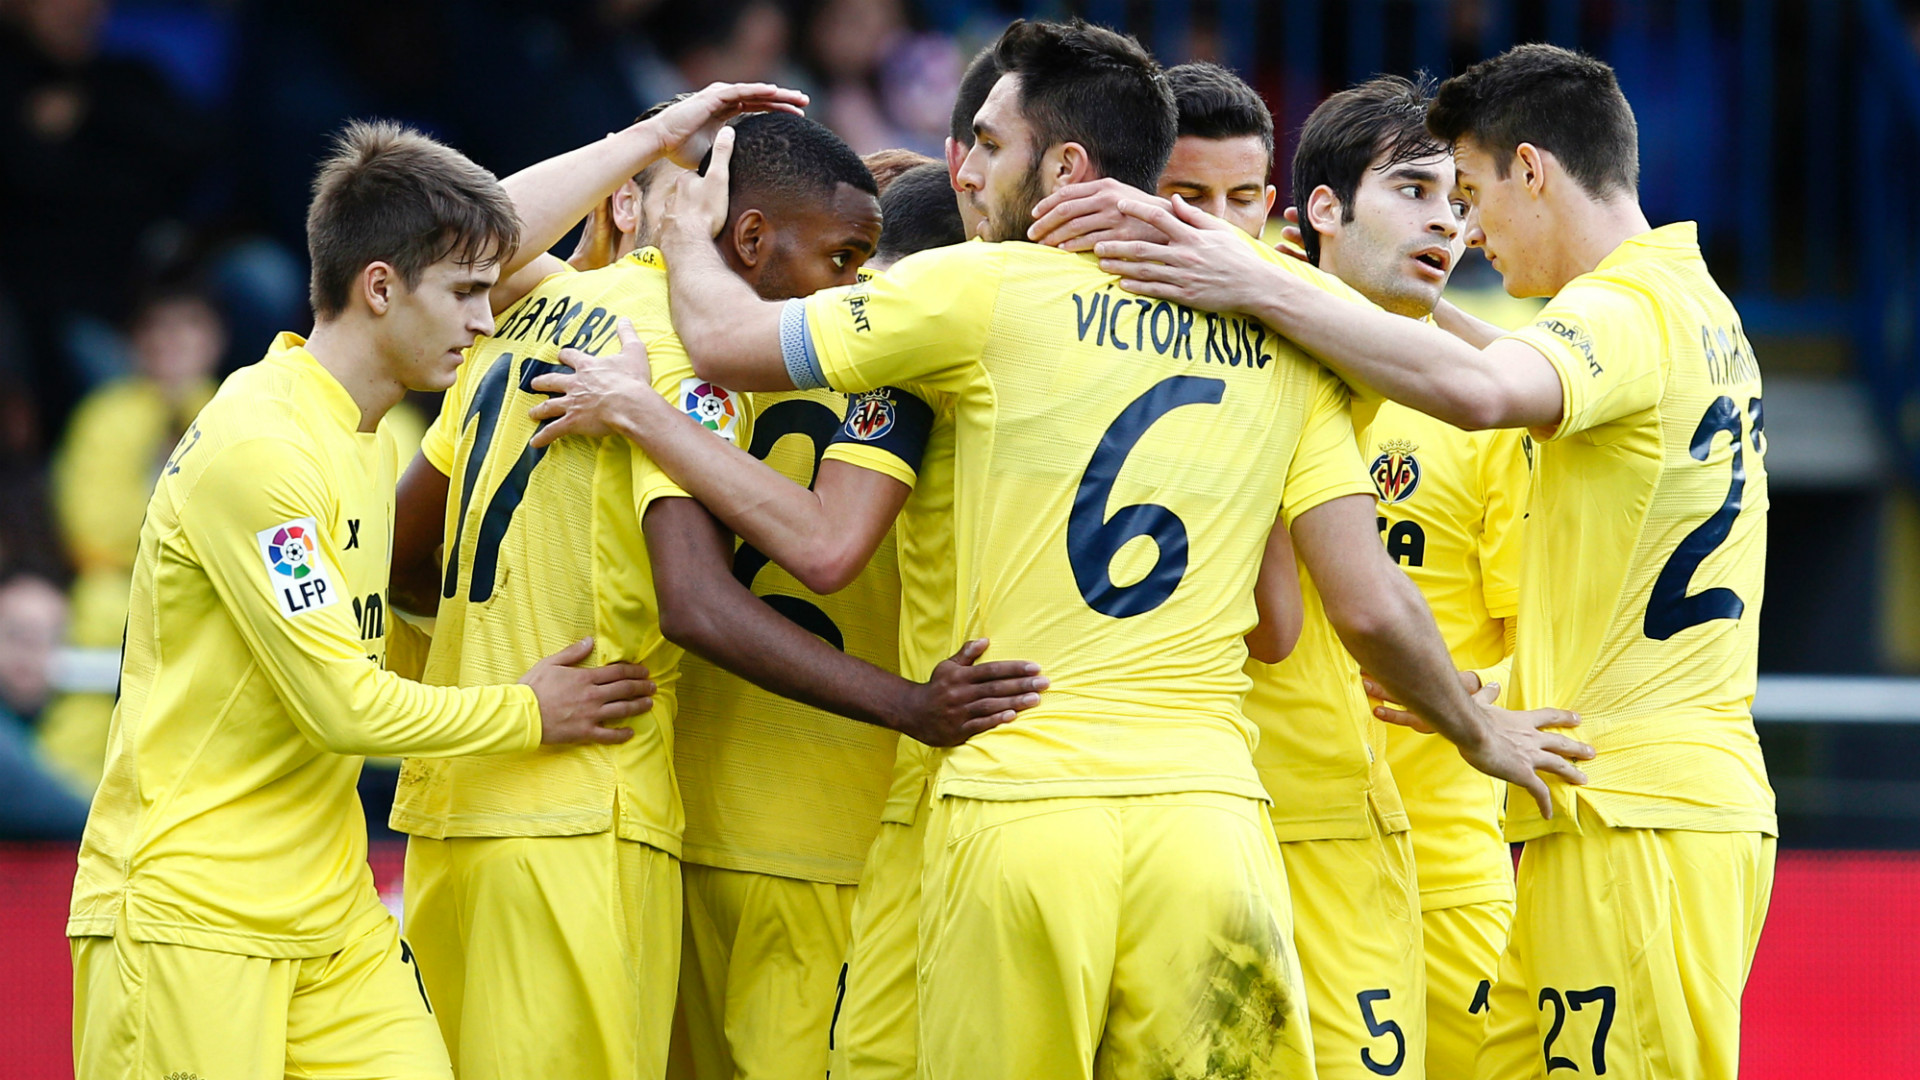 Video: Villarreal vs Sporting Gijon